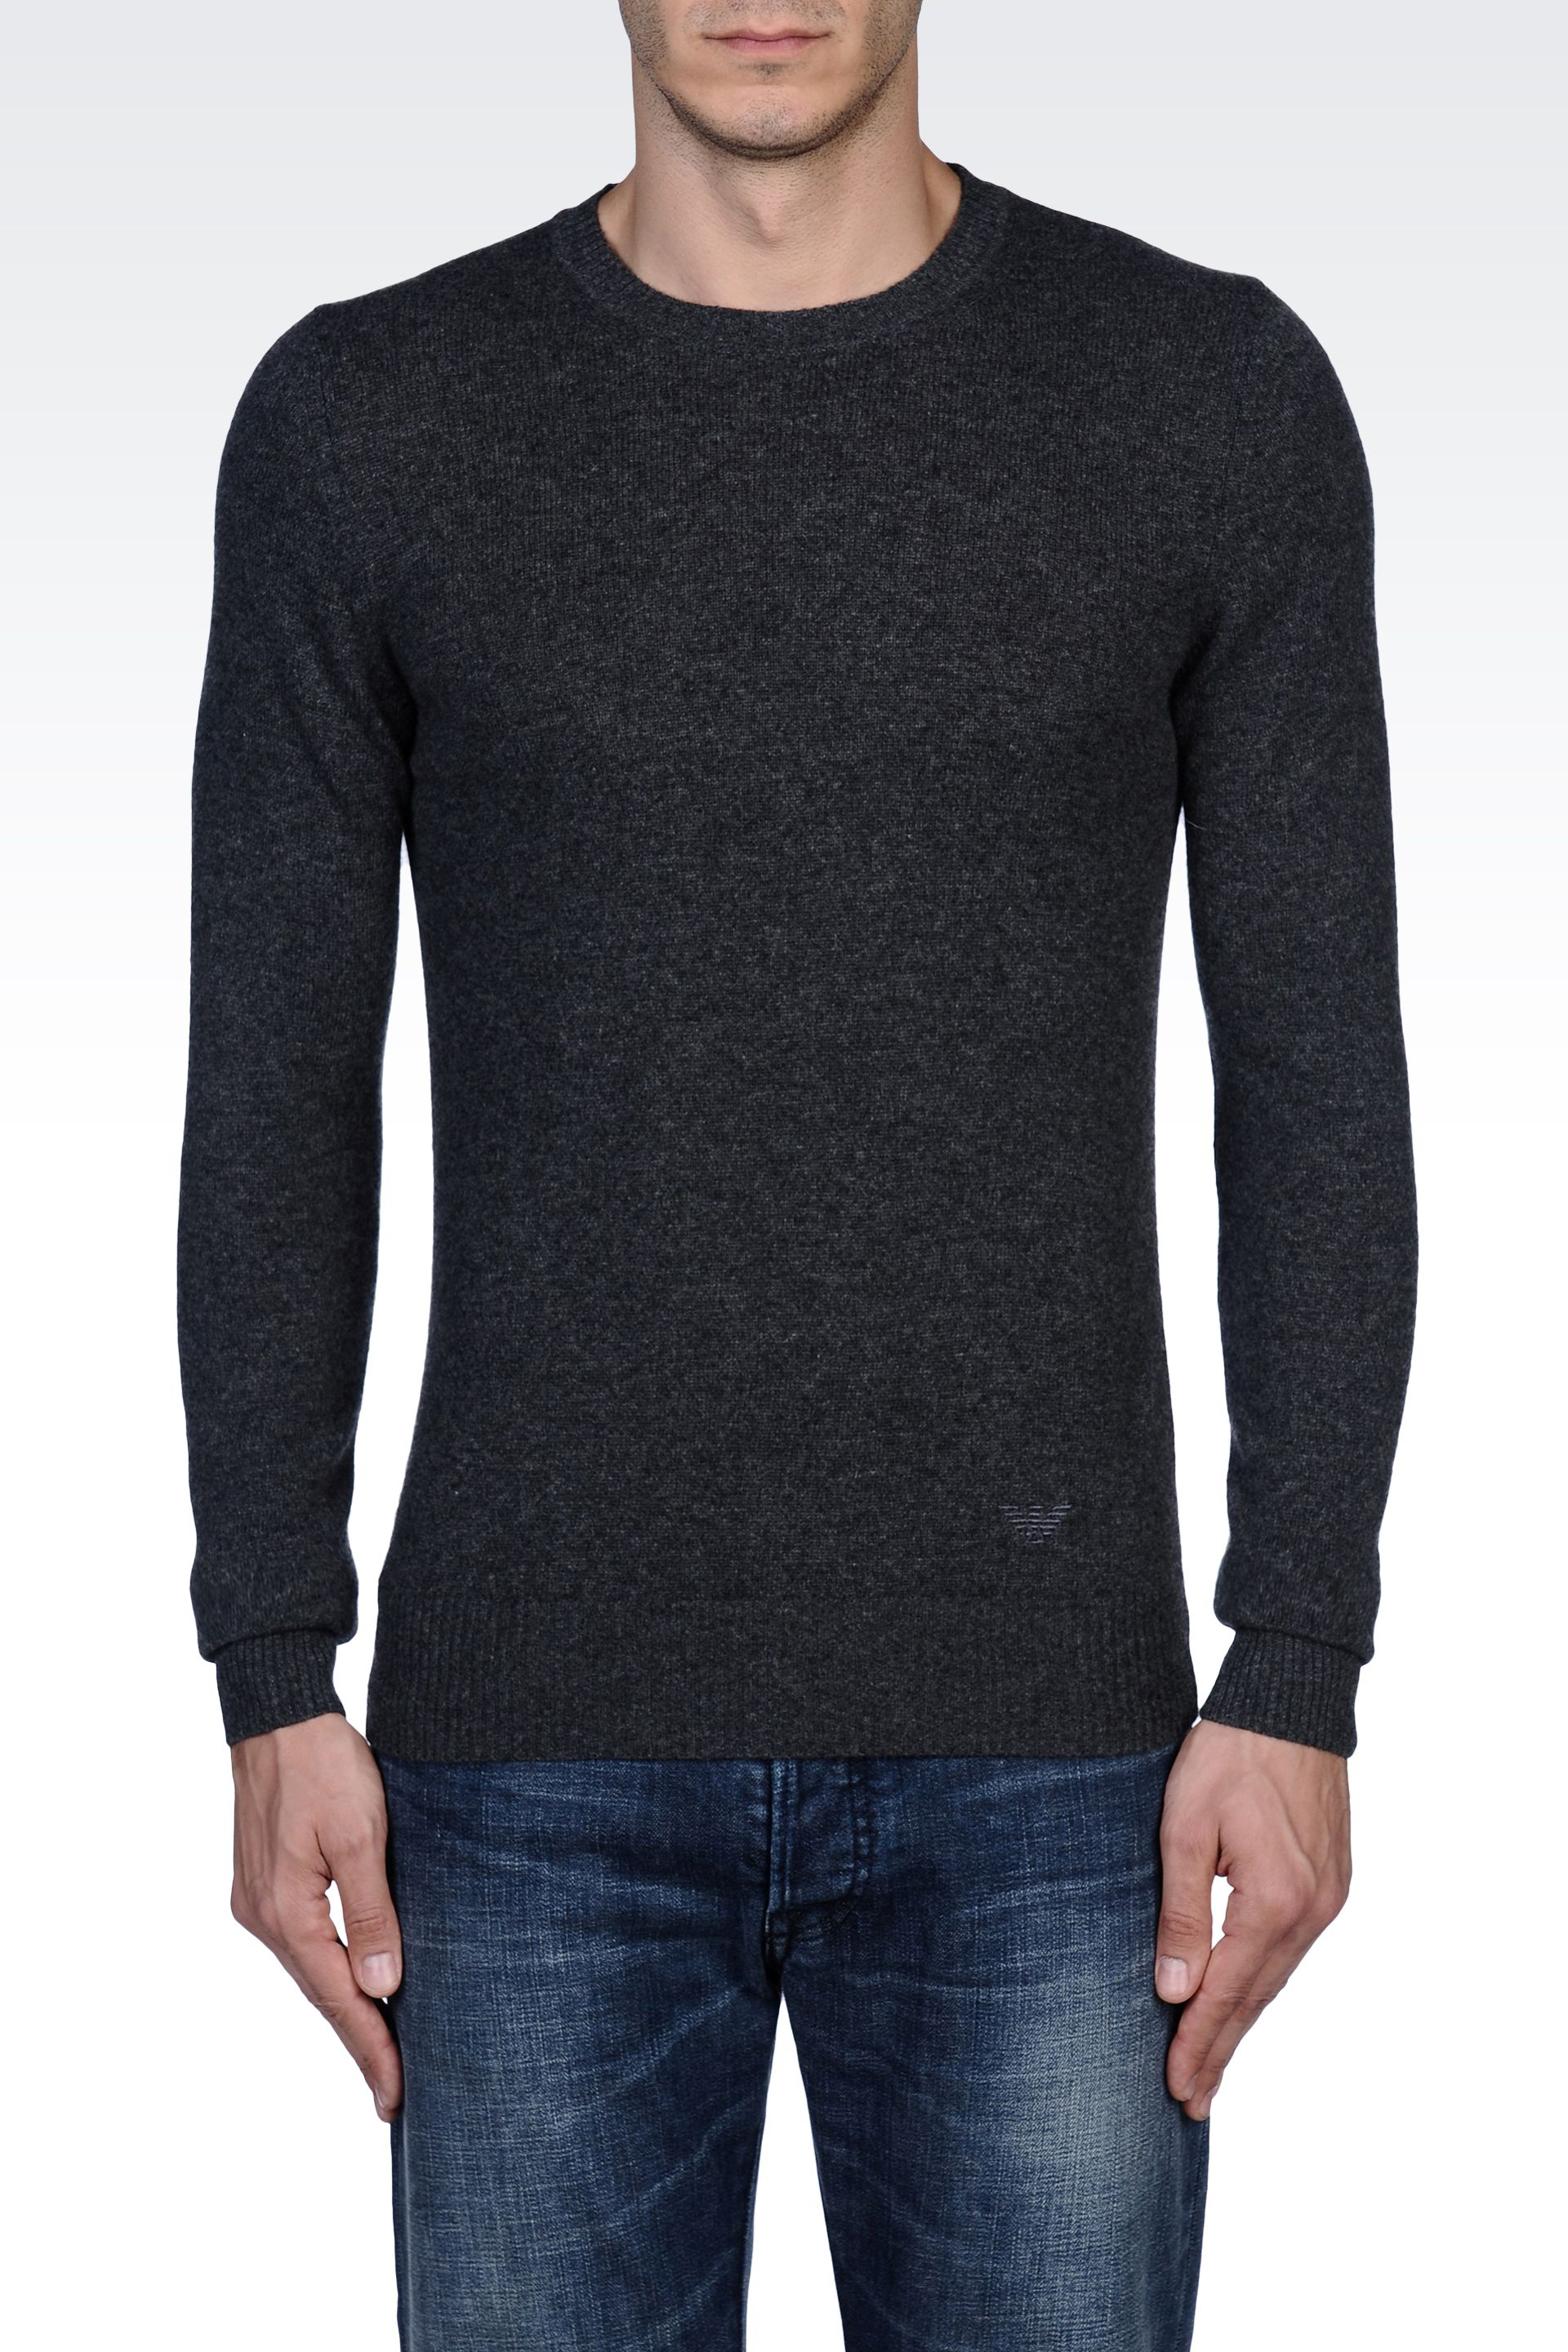 emporio armani sweater in cashmere in gray for men lyst. Black Bedroom Furniture Sets. Home Design Ideas